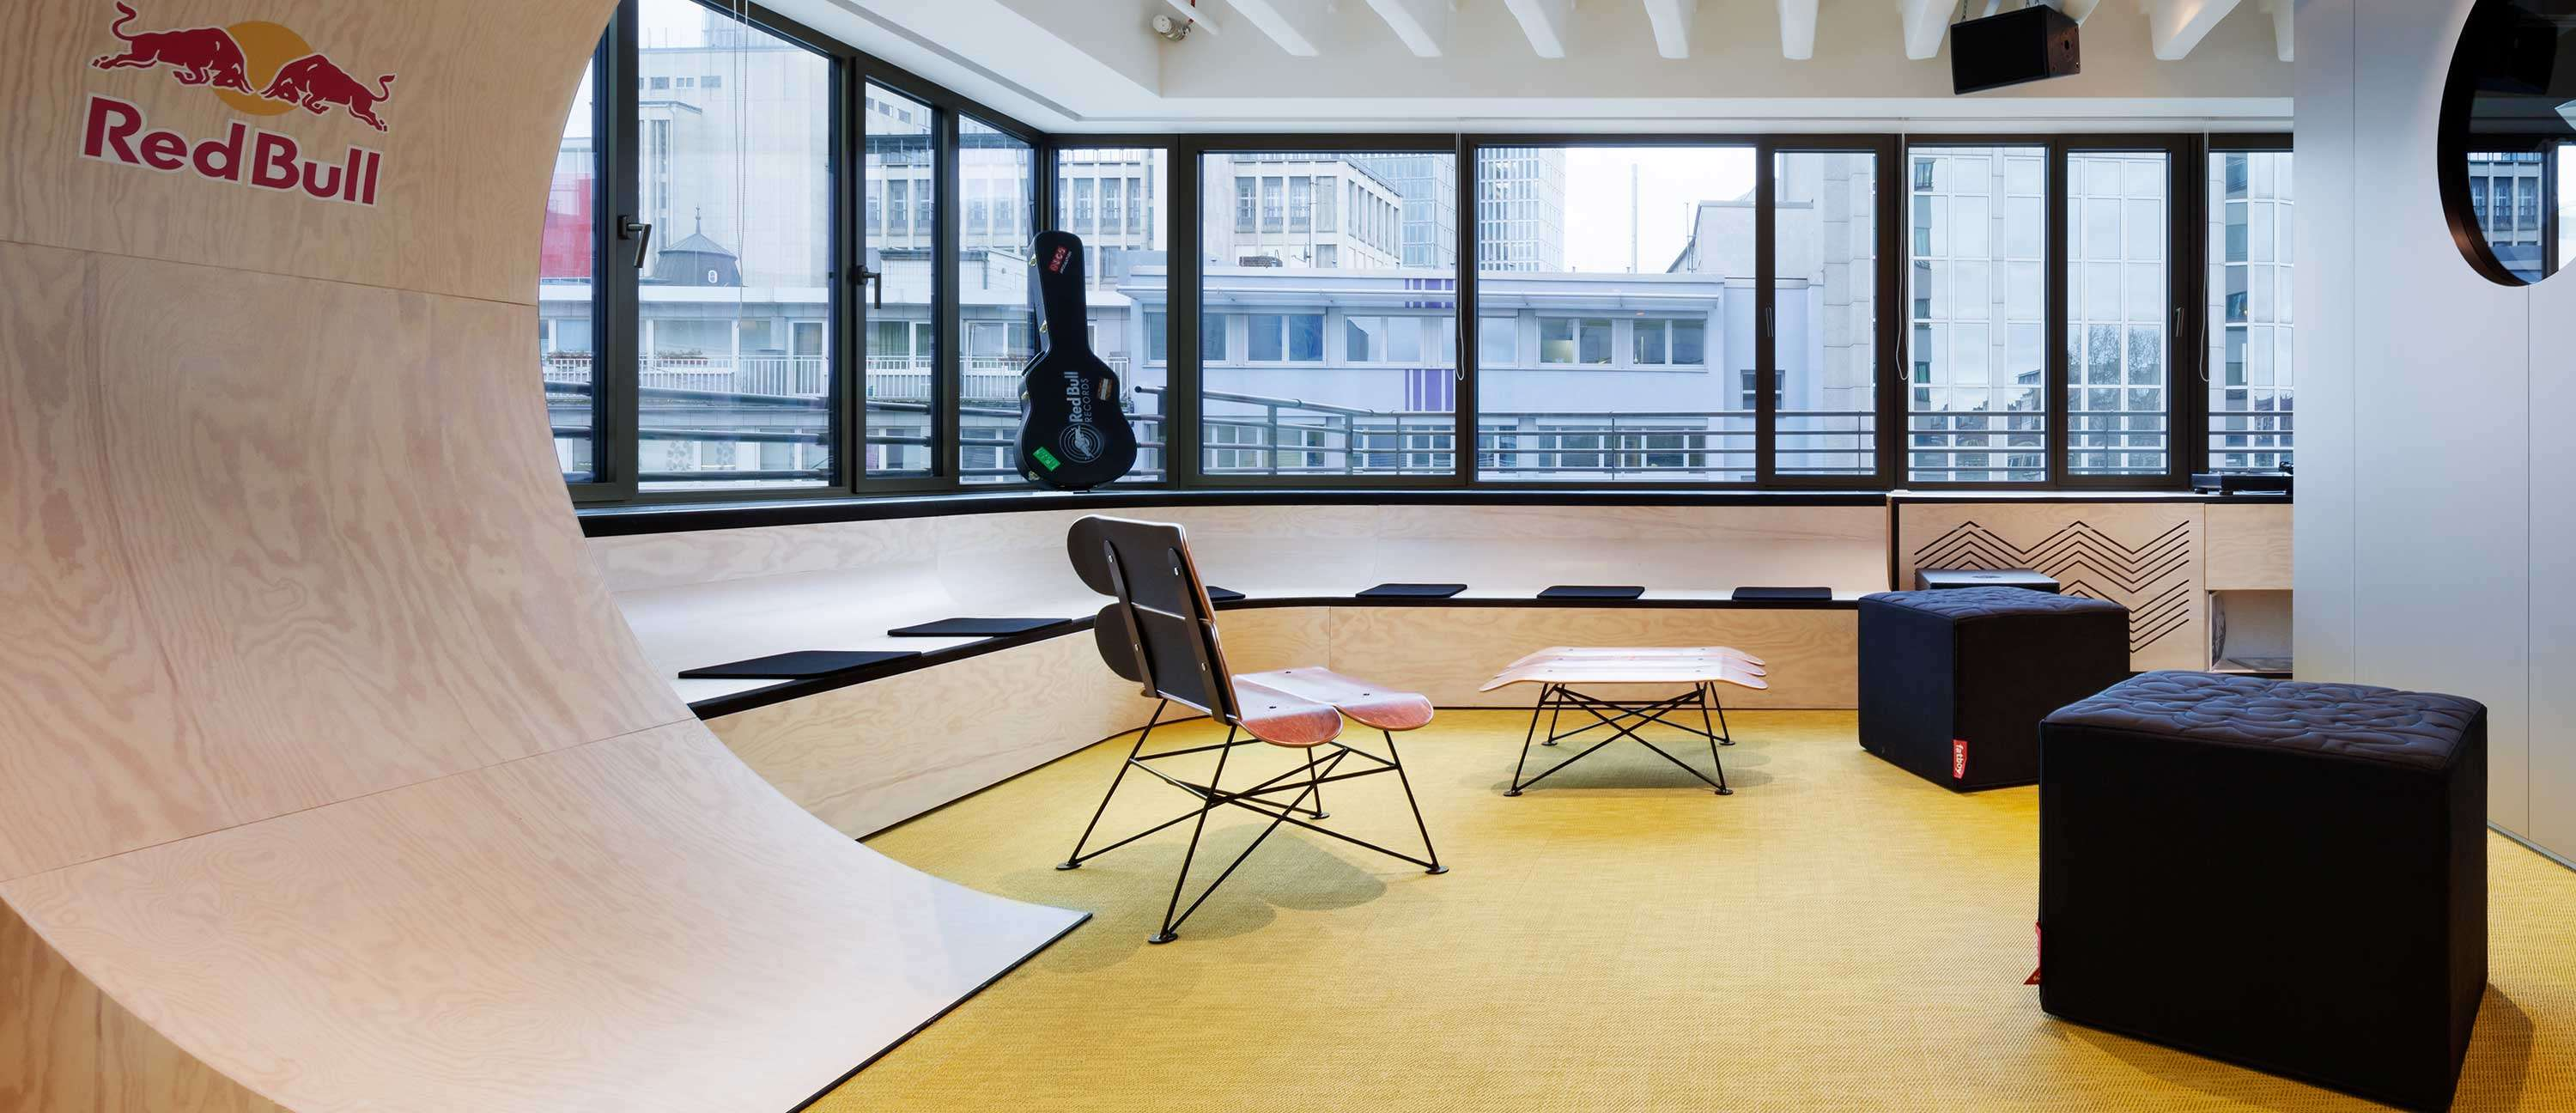 Bolon flooring in the office of Red Bull in Frankfurt, Germany